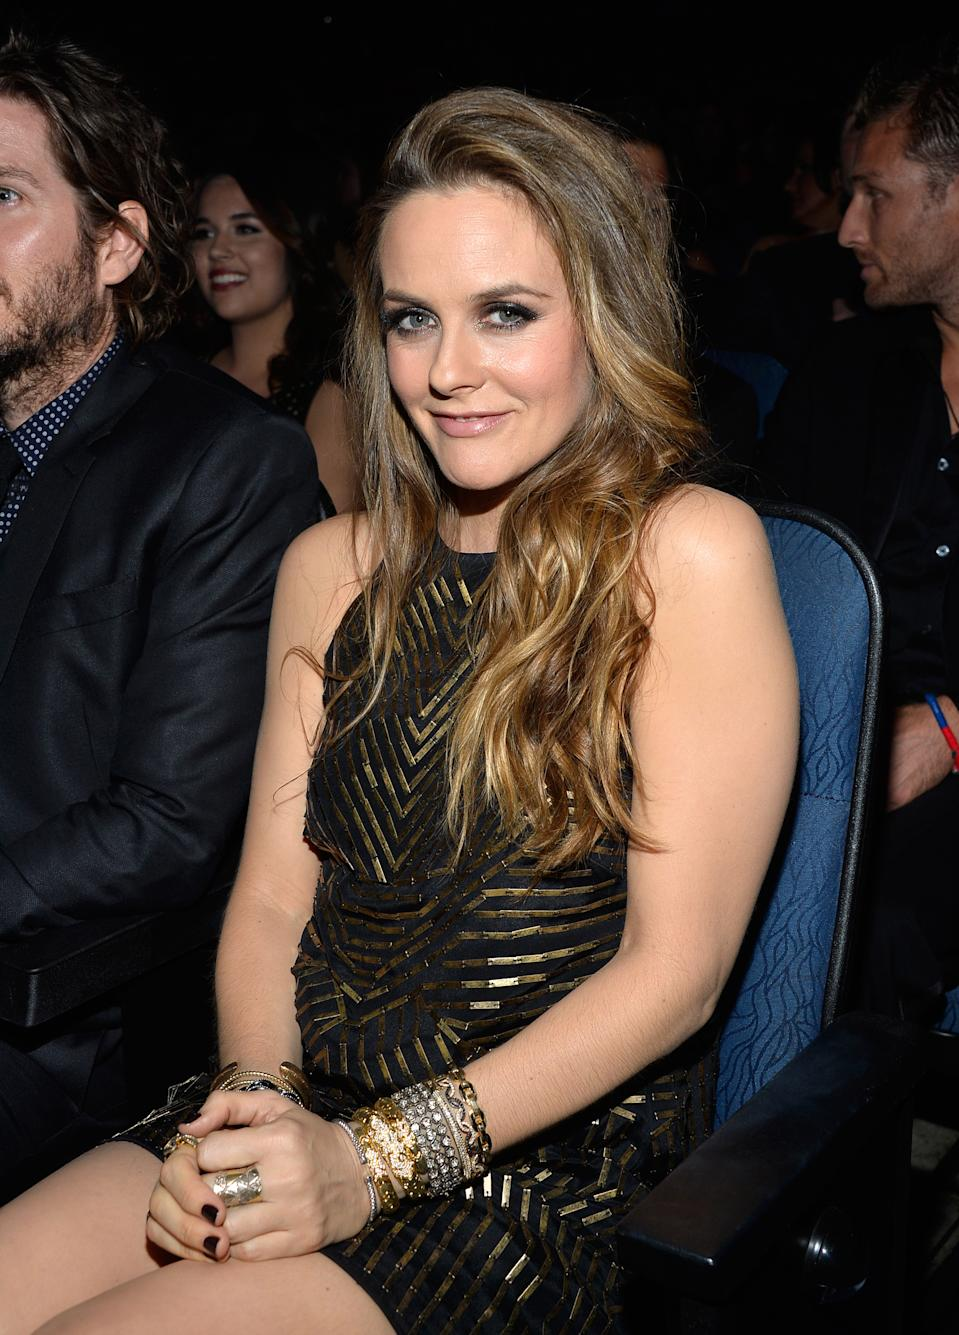 LOS ANGELES, CA - NOVEMBER 24: Actress Alicia Silverstone attends the 2013 American Music Awards at Nokia Theatre L.A. Live on November 24, 2013 in Los Angeles, California. (Photo by Frazer Harrison/AMA2013/FilmMagic)